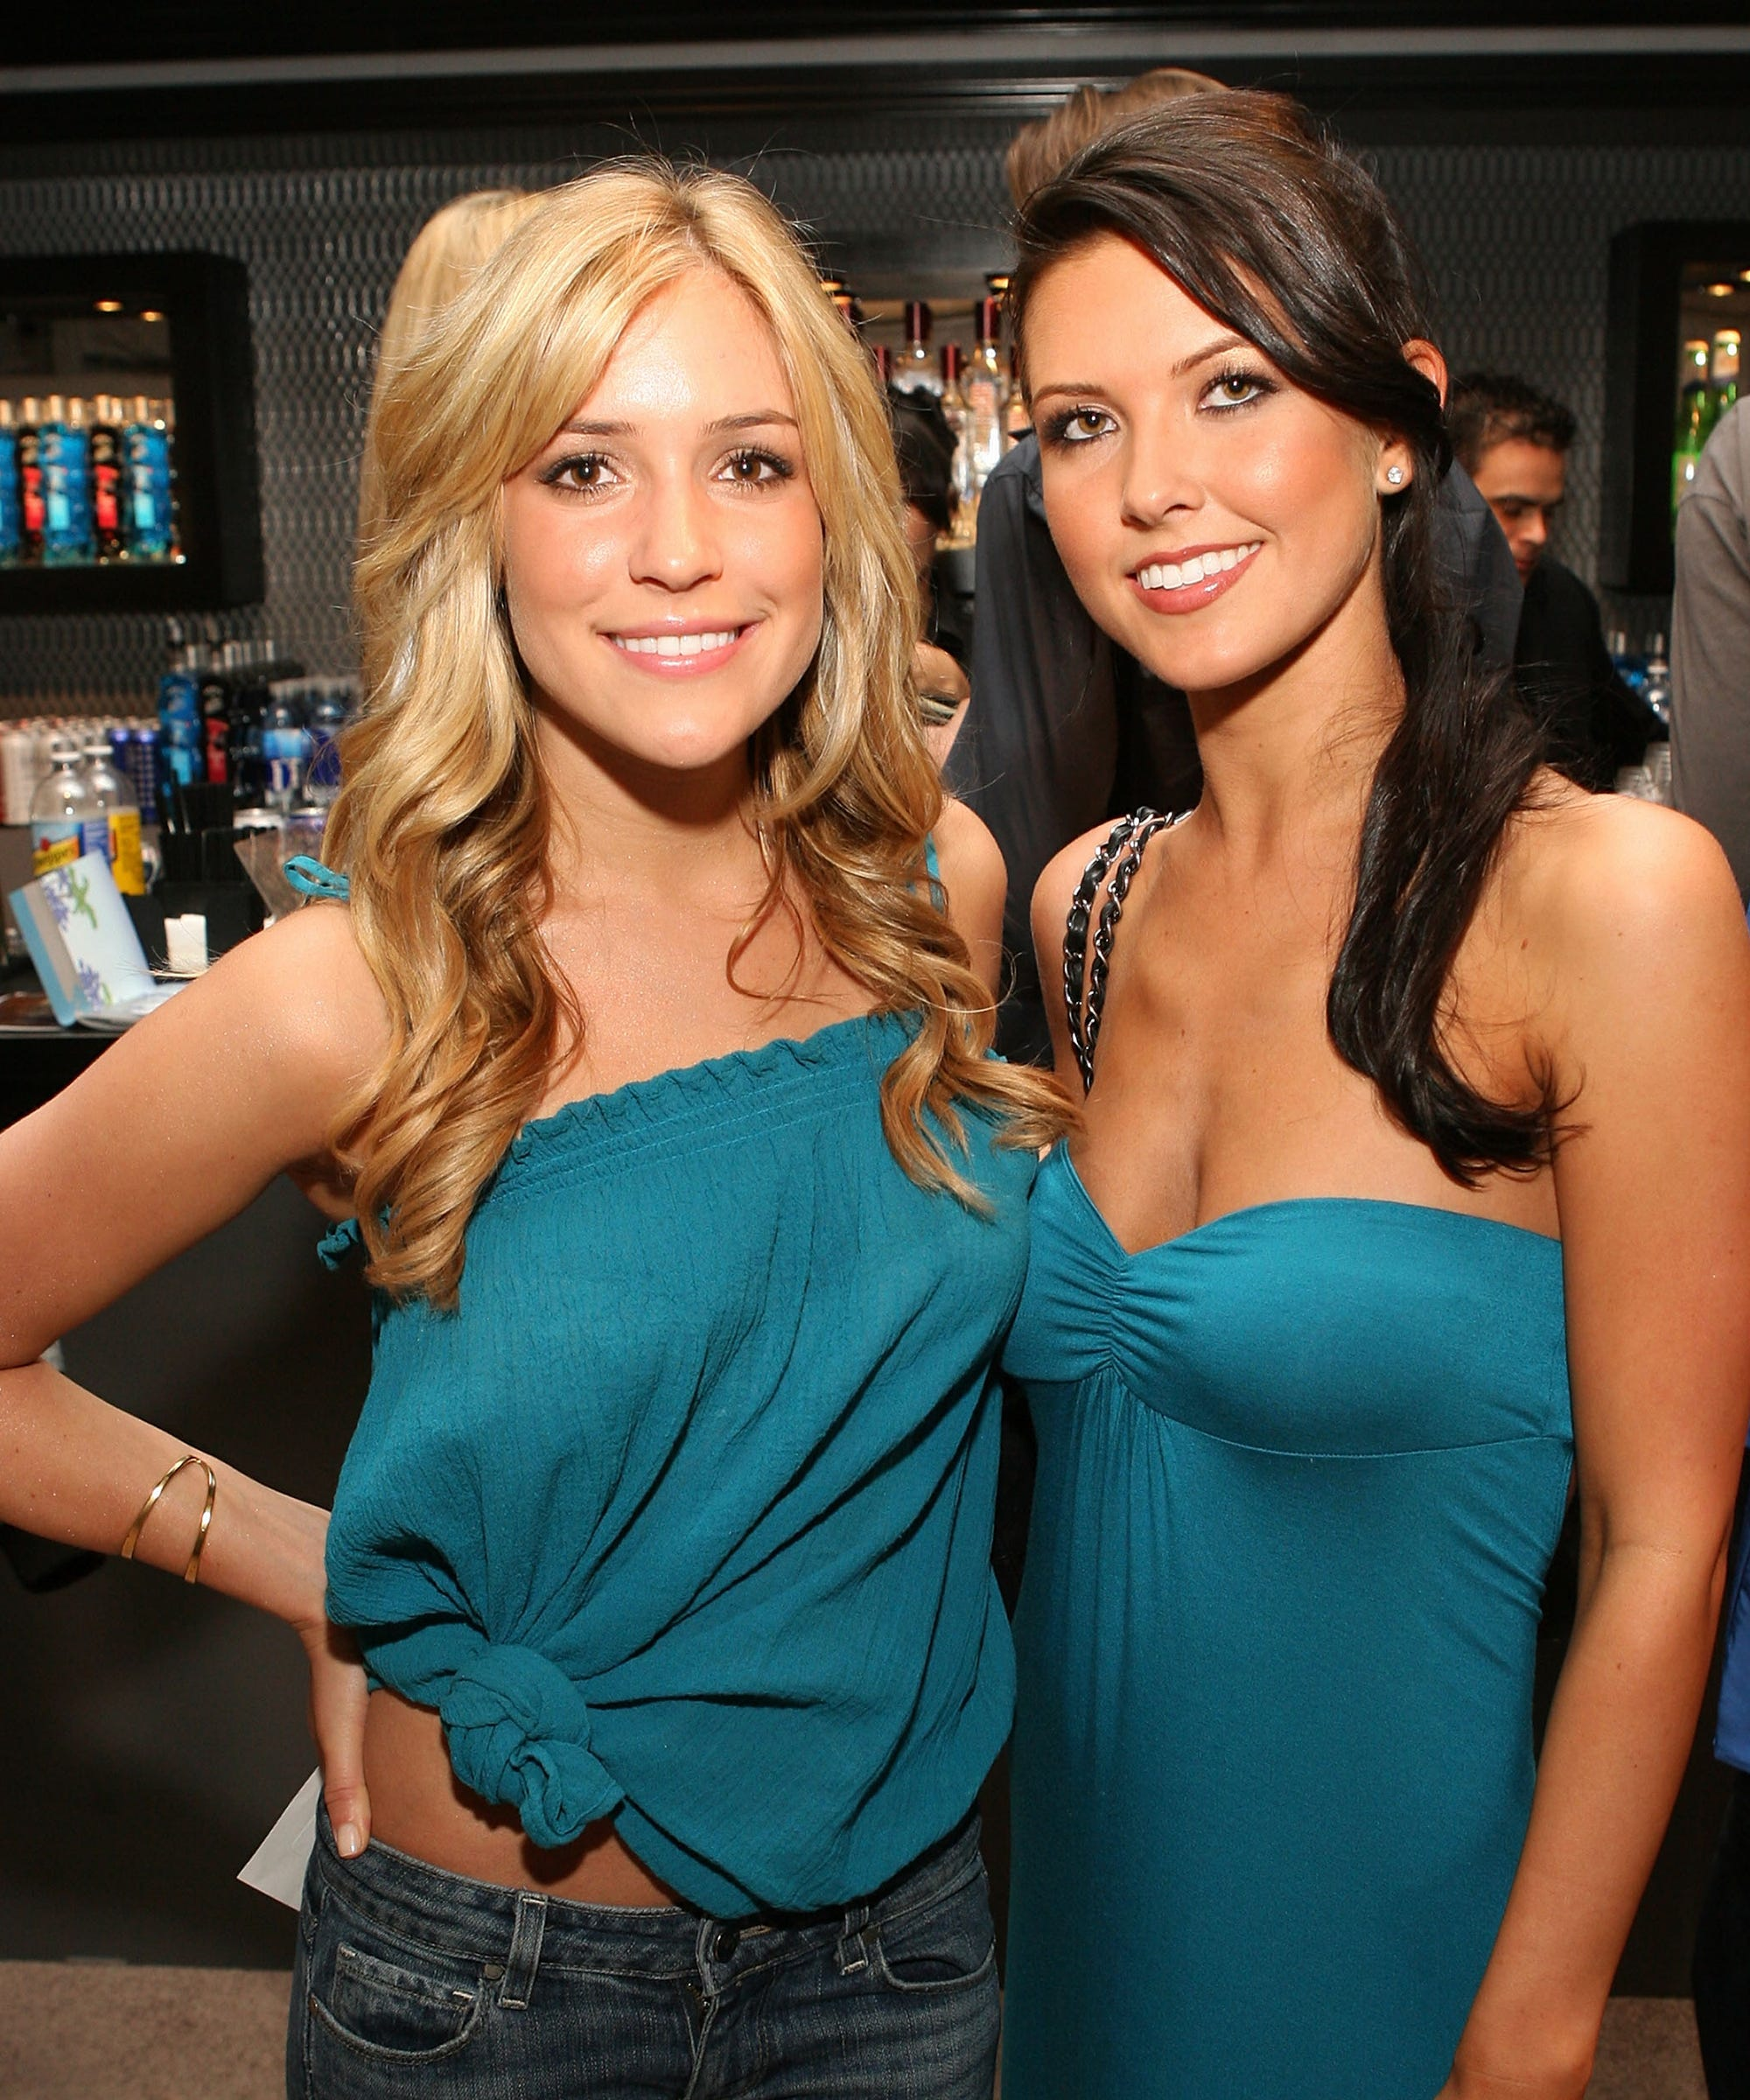 If You're Hoping For A Kristin Cavallari Cameo On The Hills: New Beginnings, This Is Gonna Hurt